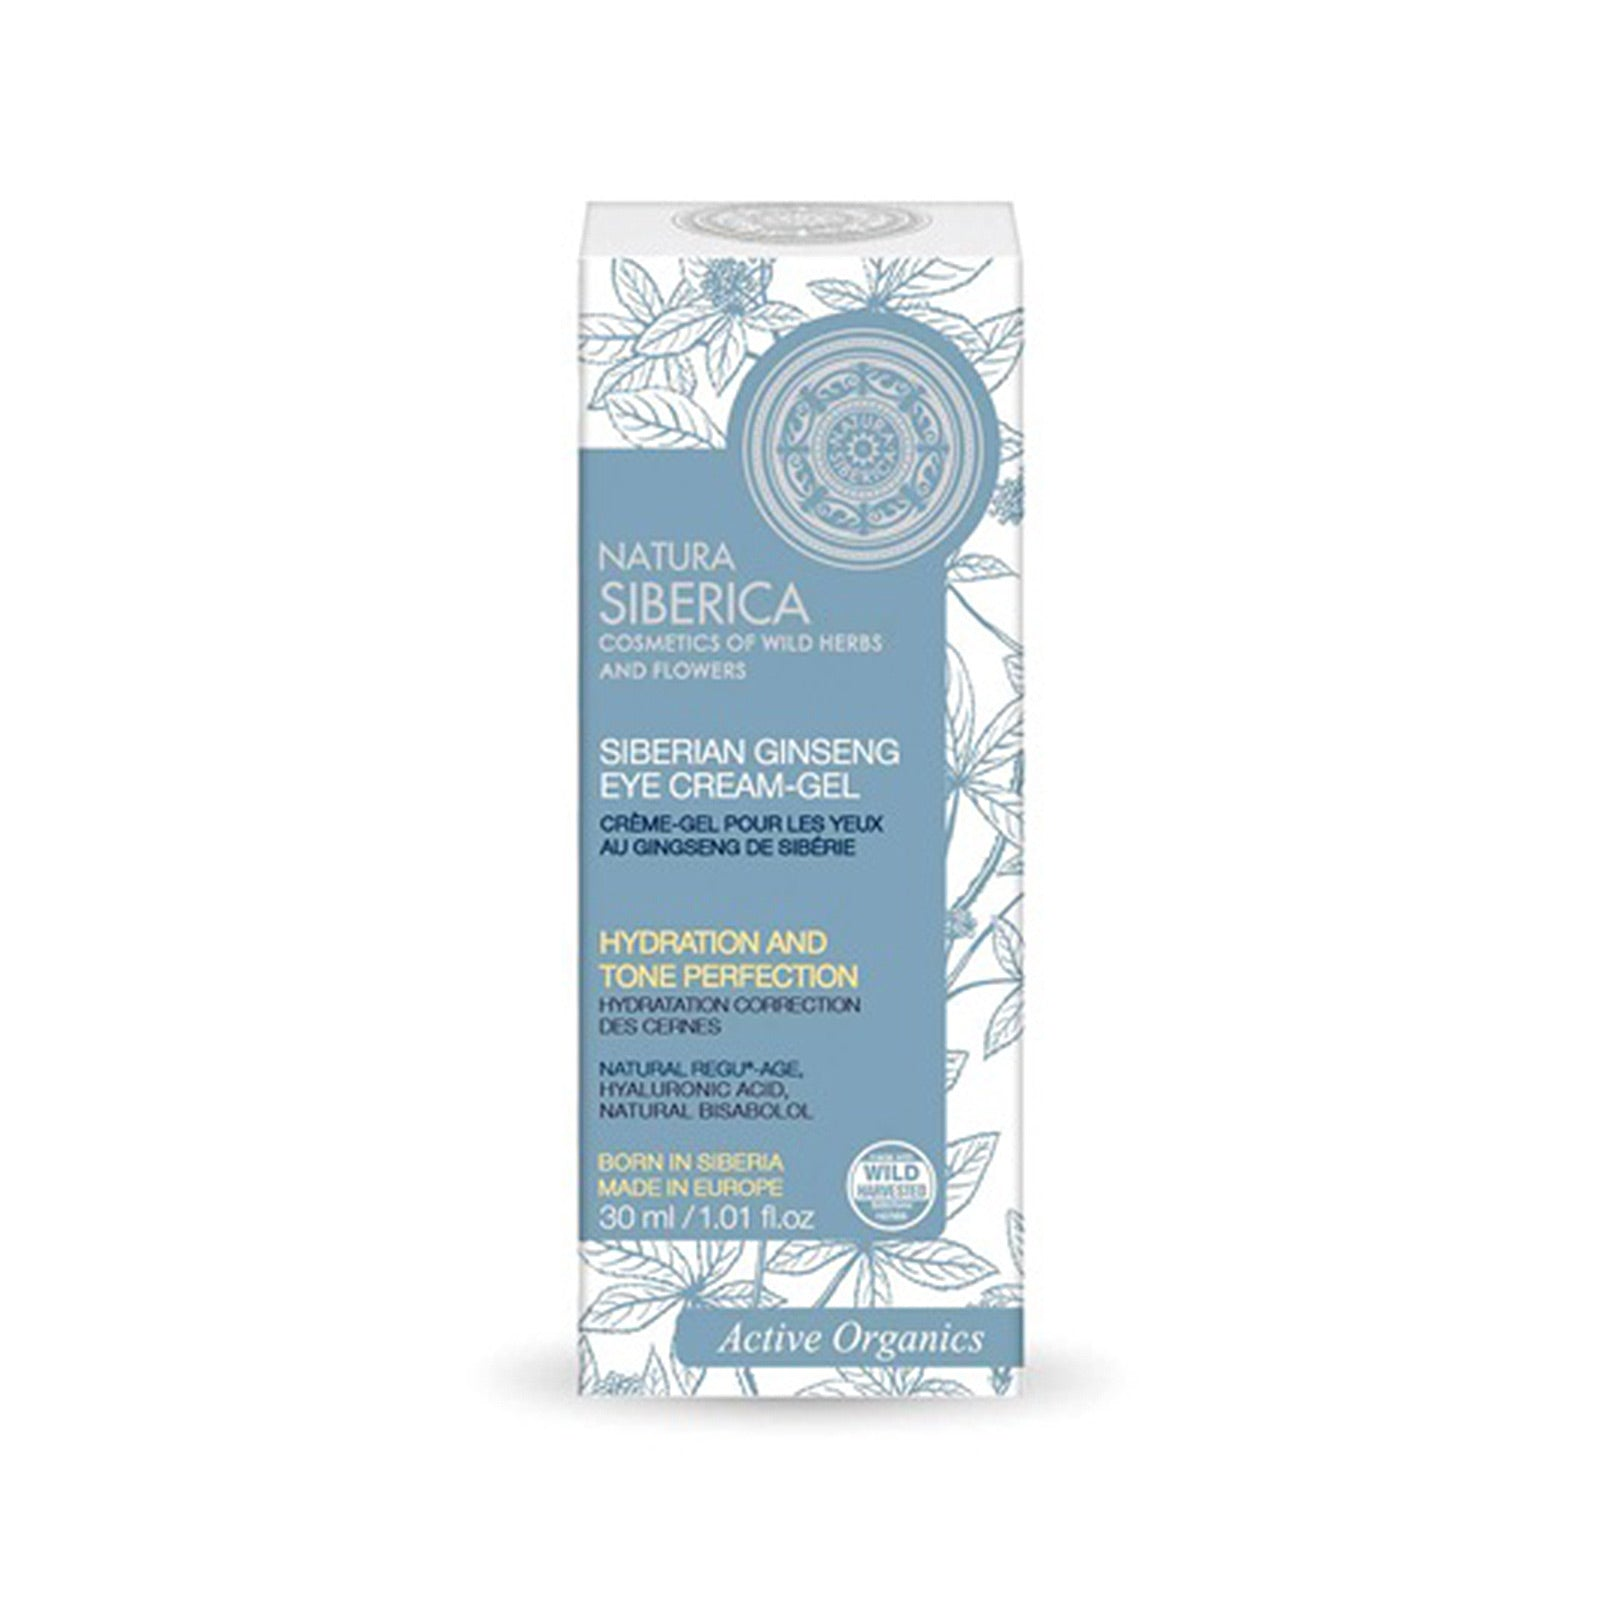 Siberian Ginseng Eye Cream Gel, Anti-Puffiness, 30 ml